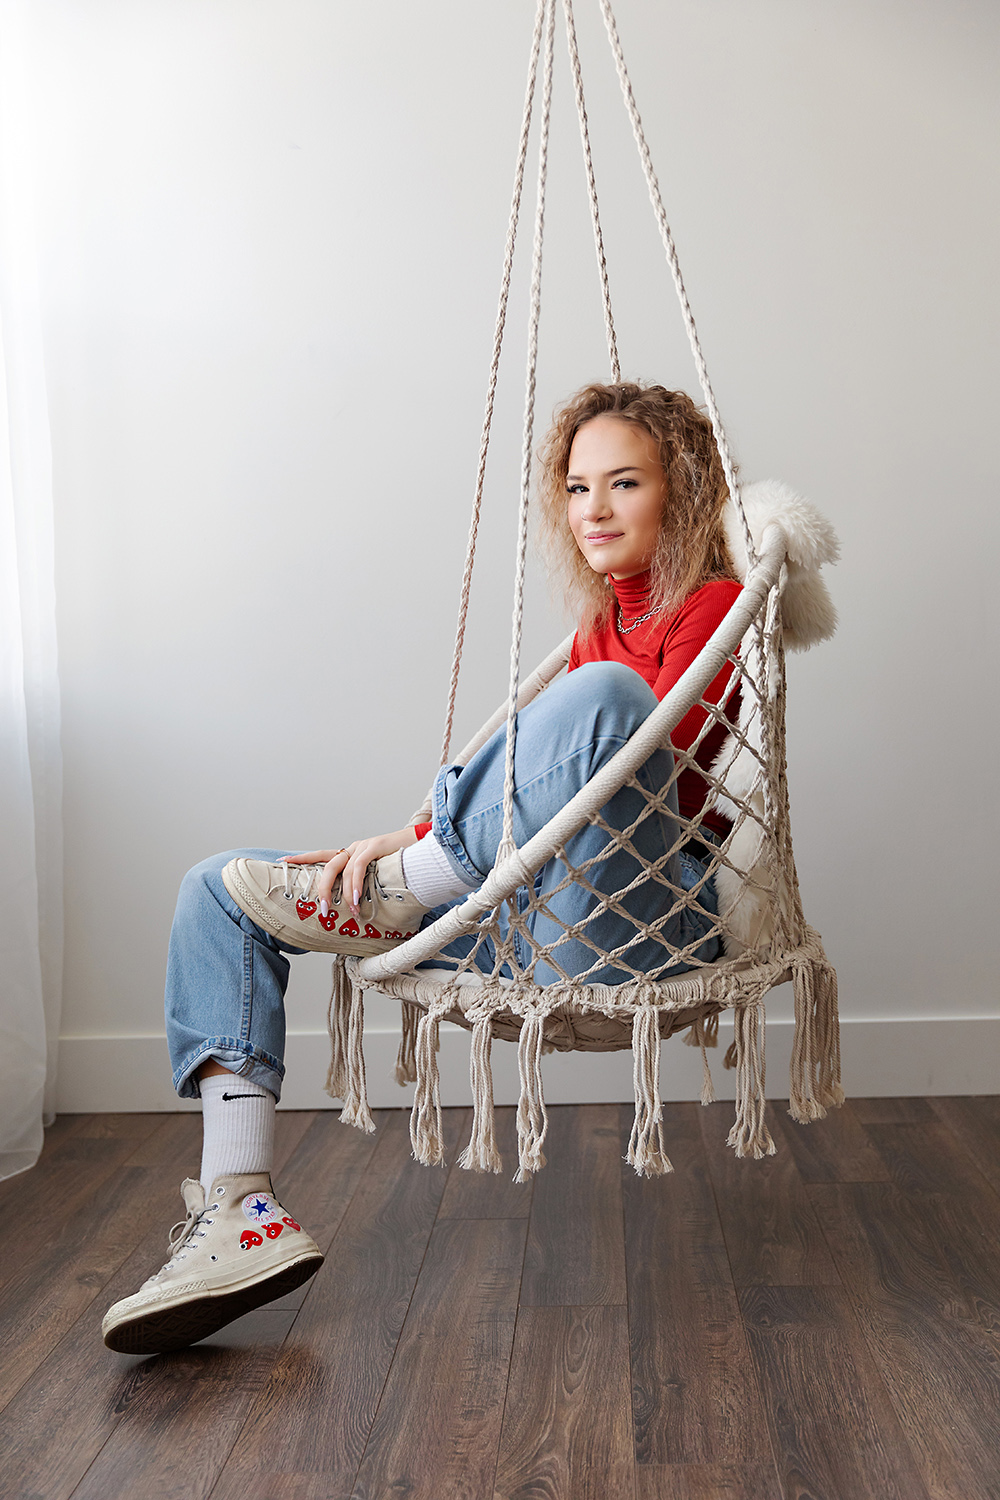 Converse wearing teenager on a crochet swing